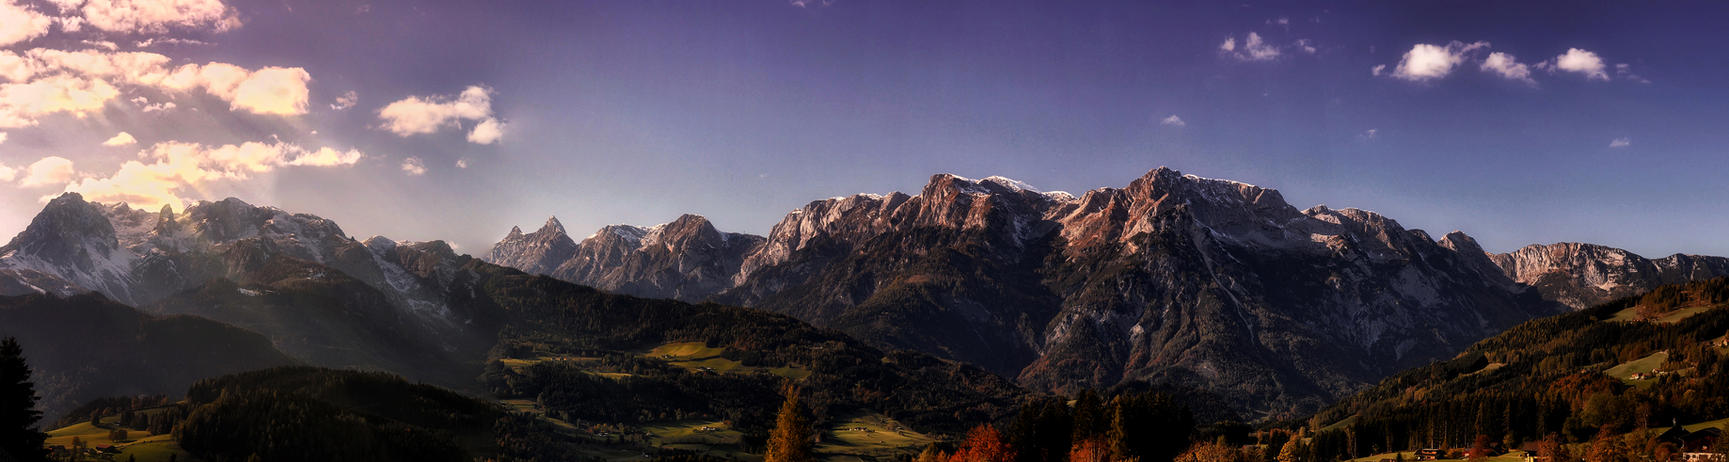 Panorama_autumn_2011_1 by LeronMasoN